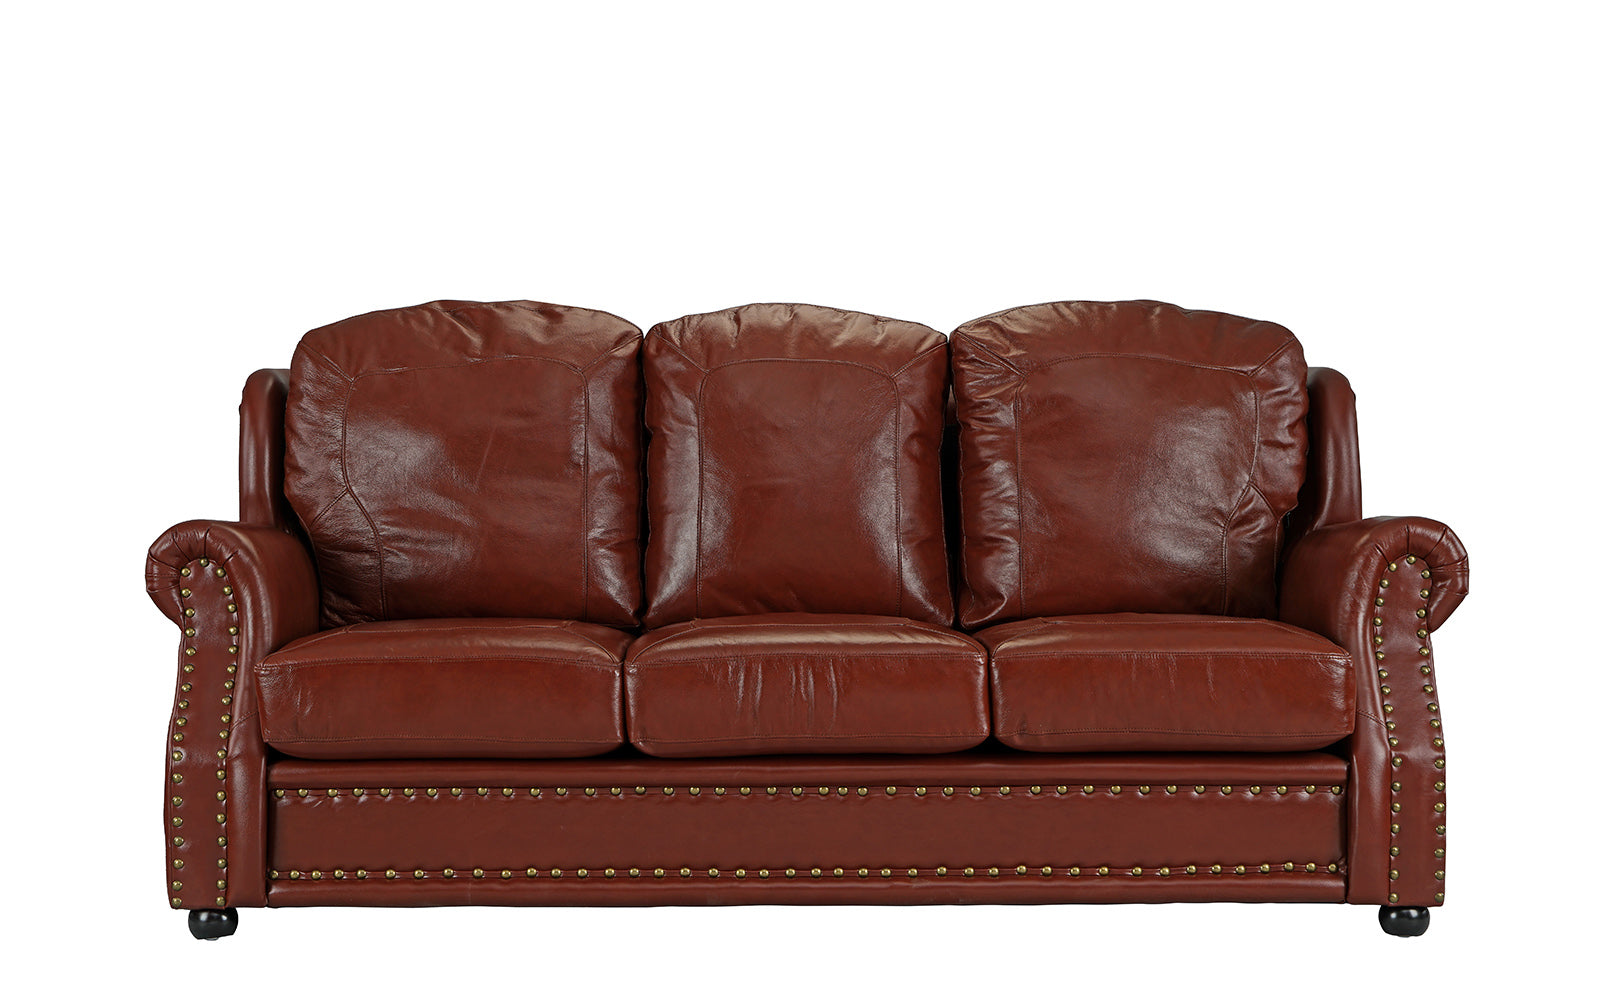 Executive Top Gain Leather Sofa Image